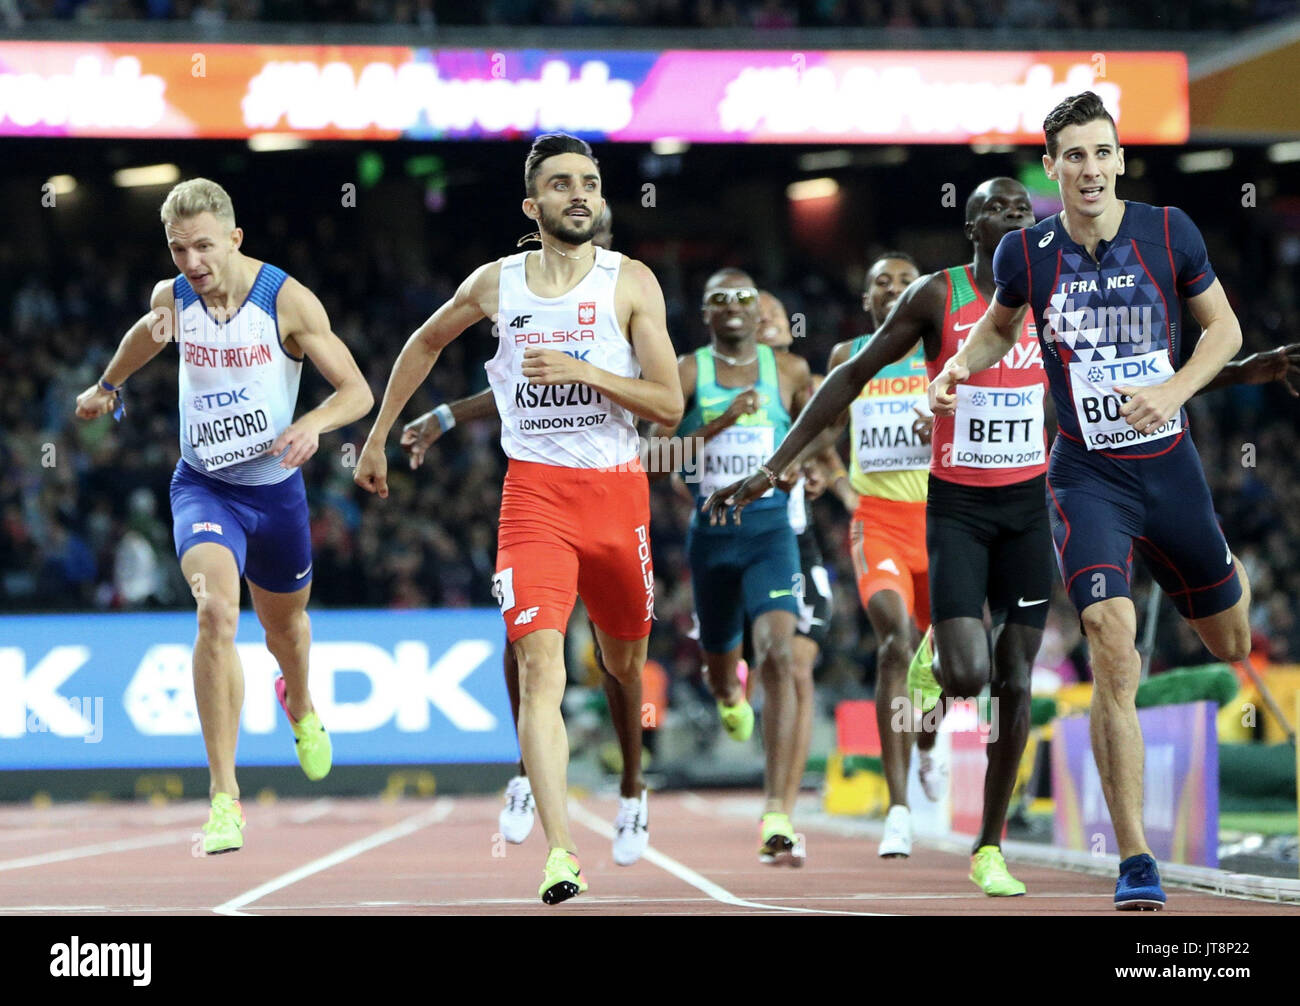 London, UK. 08th Aug, 2017. French athlete Pierre Bosse (R), who won the gold, and Polish Adam Kszczot (2L), who won the silver, during 800 meters competition at the World Athletics Championships at the olympic stadium in London, United Kingdom, 08 August 2017. EFE/Lavandeira jr./Alamy Live News - Stock Image